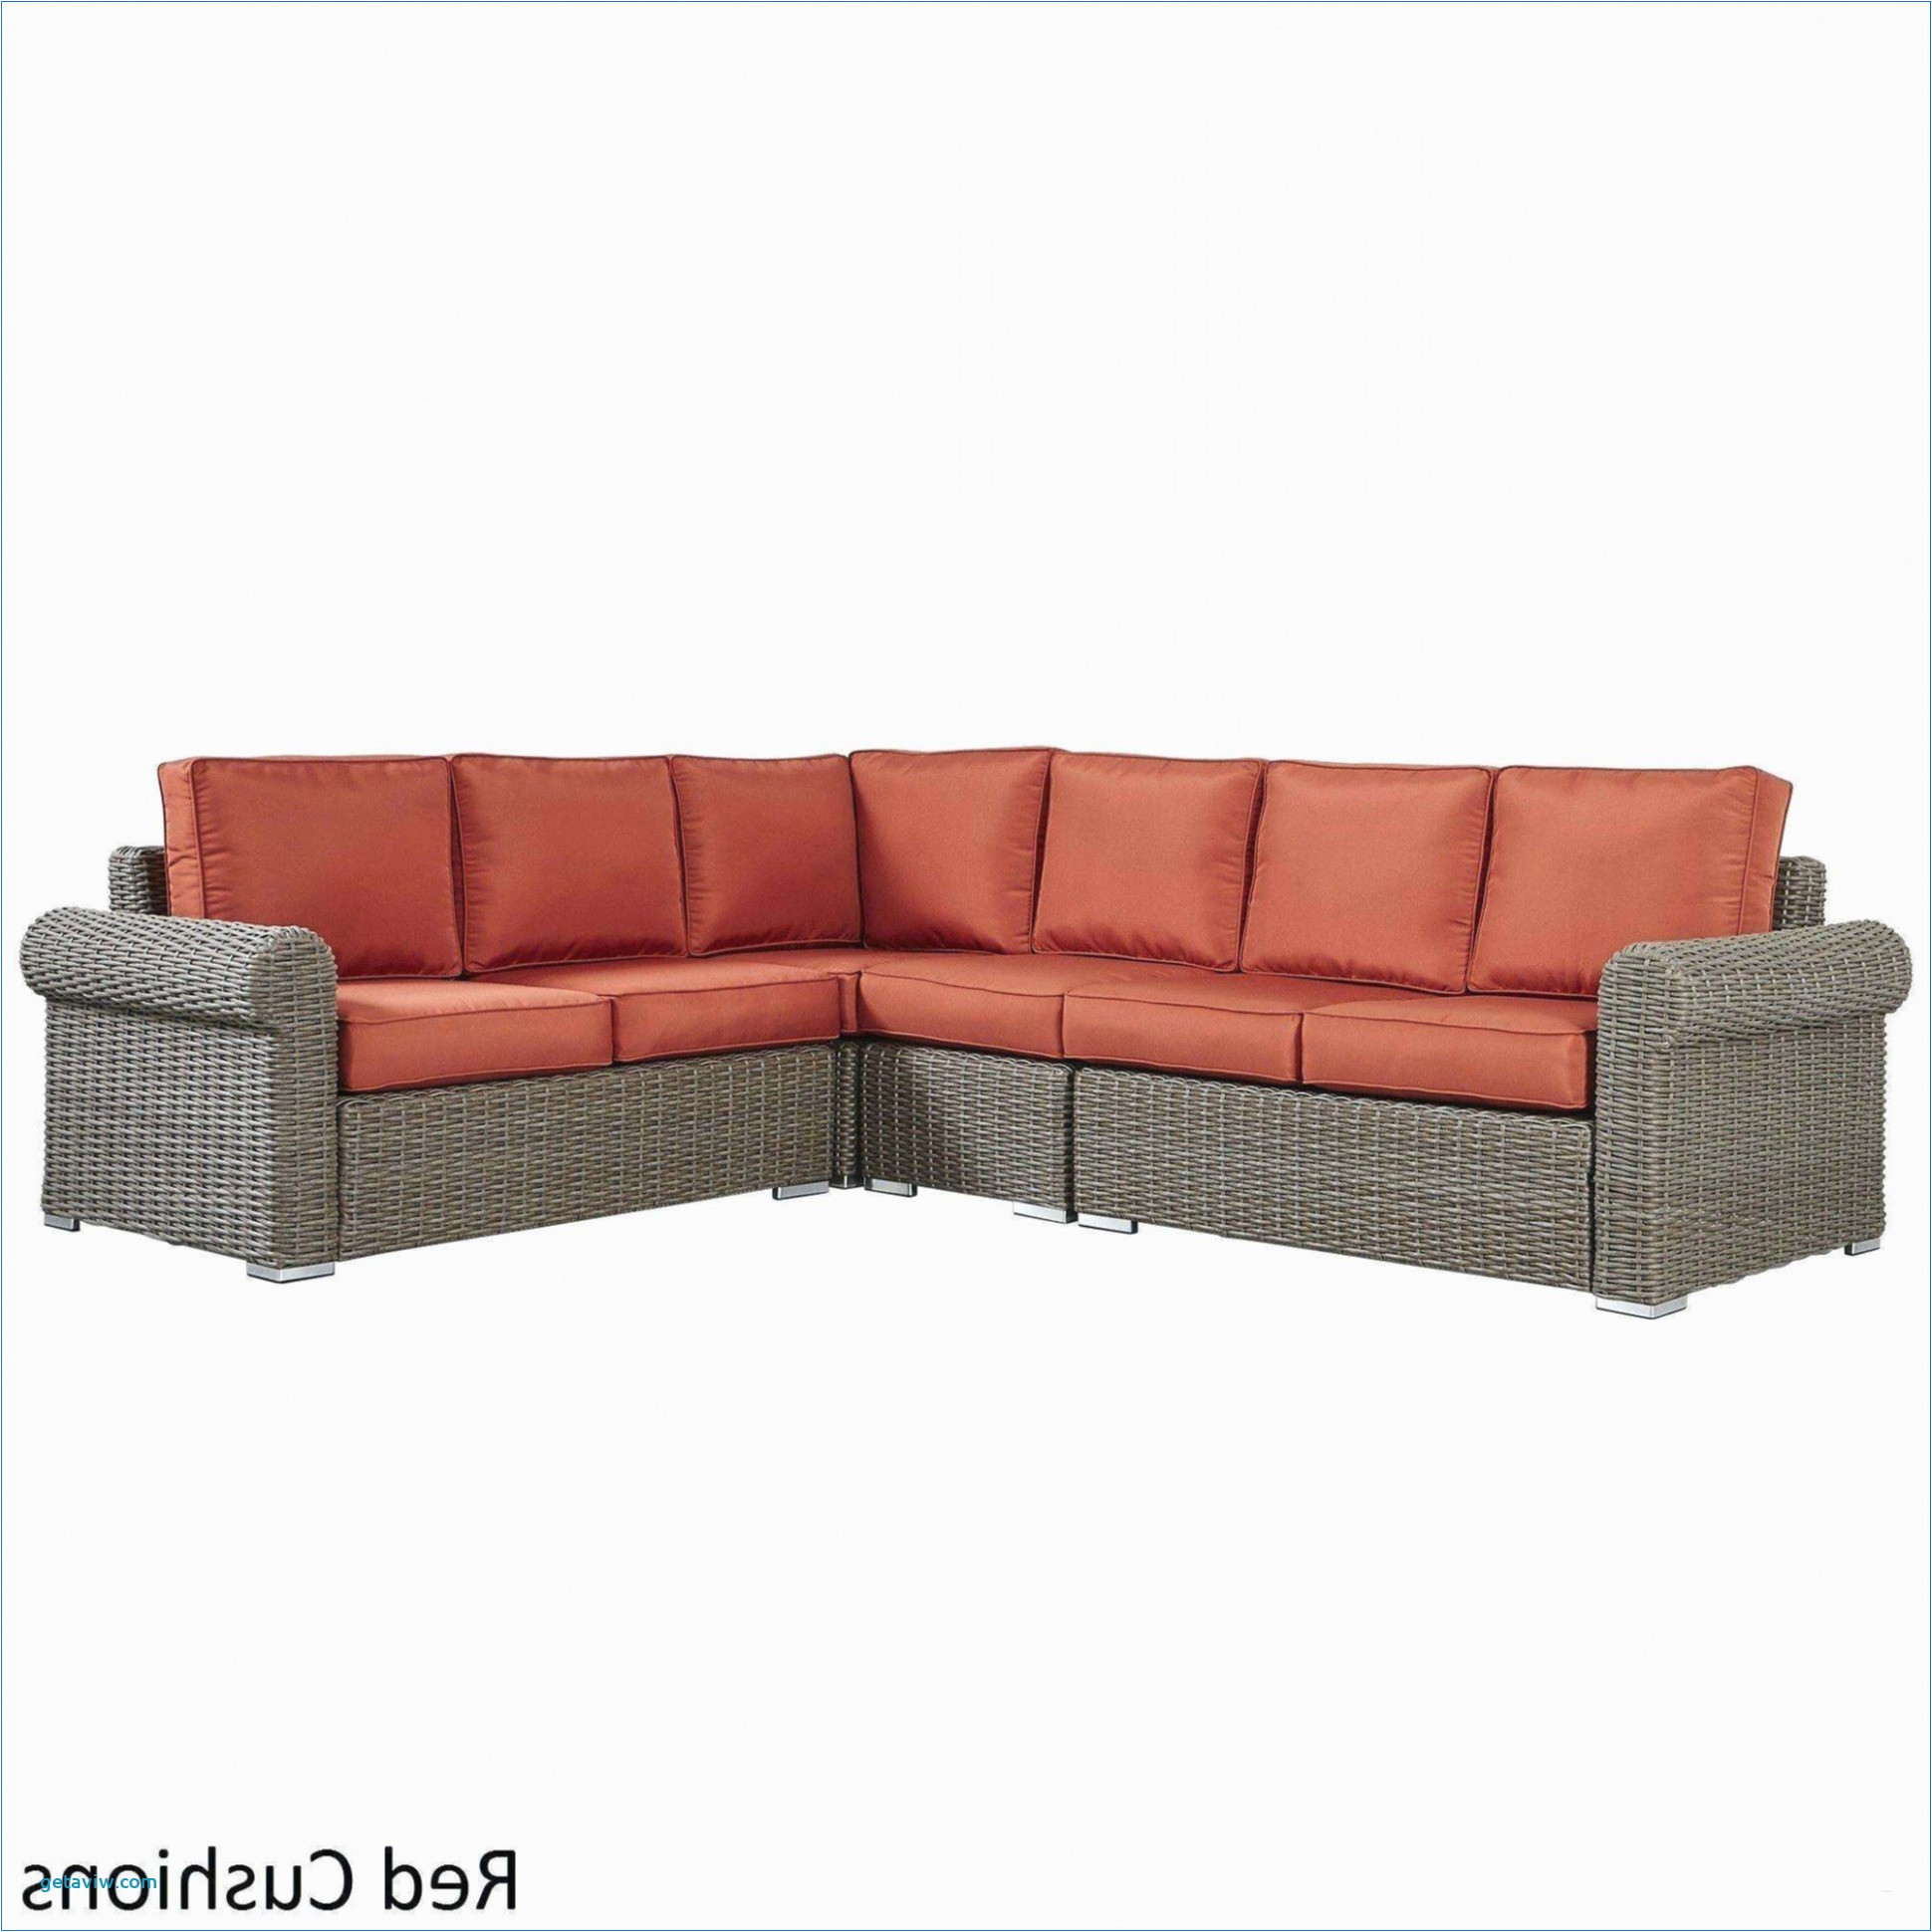 outdoorstoffe ikea outdoor patio lights simple outdoor patio cover amazing wicker outdoor sofa 0d patio chairs concept